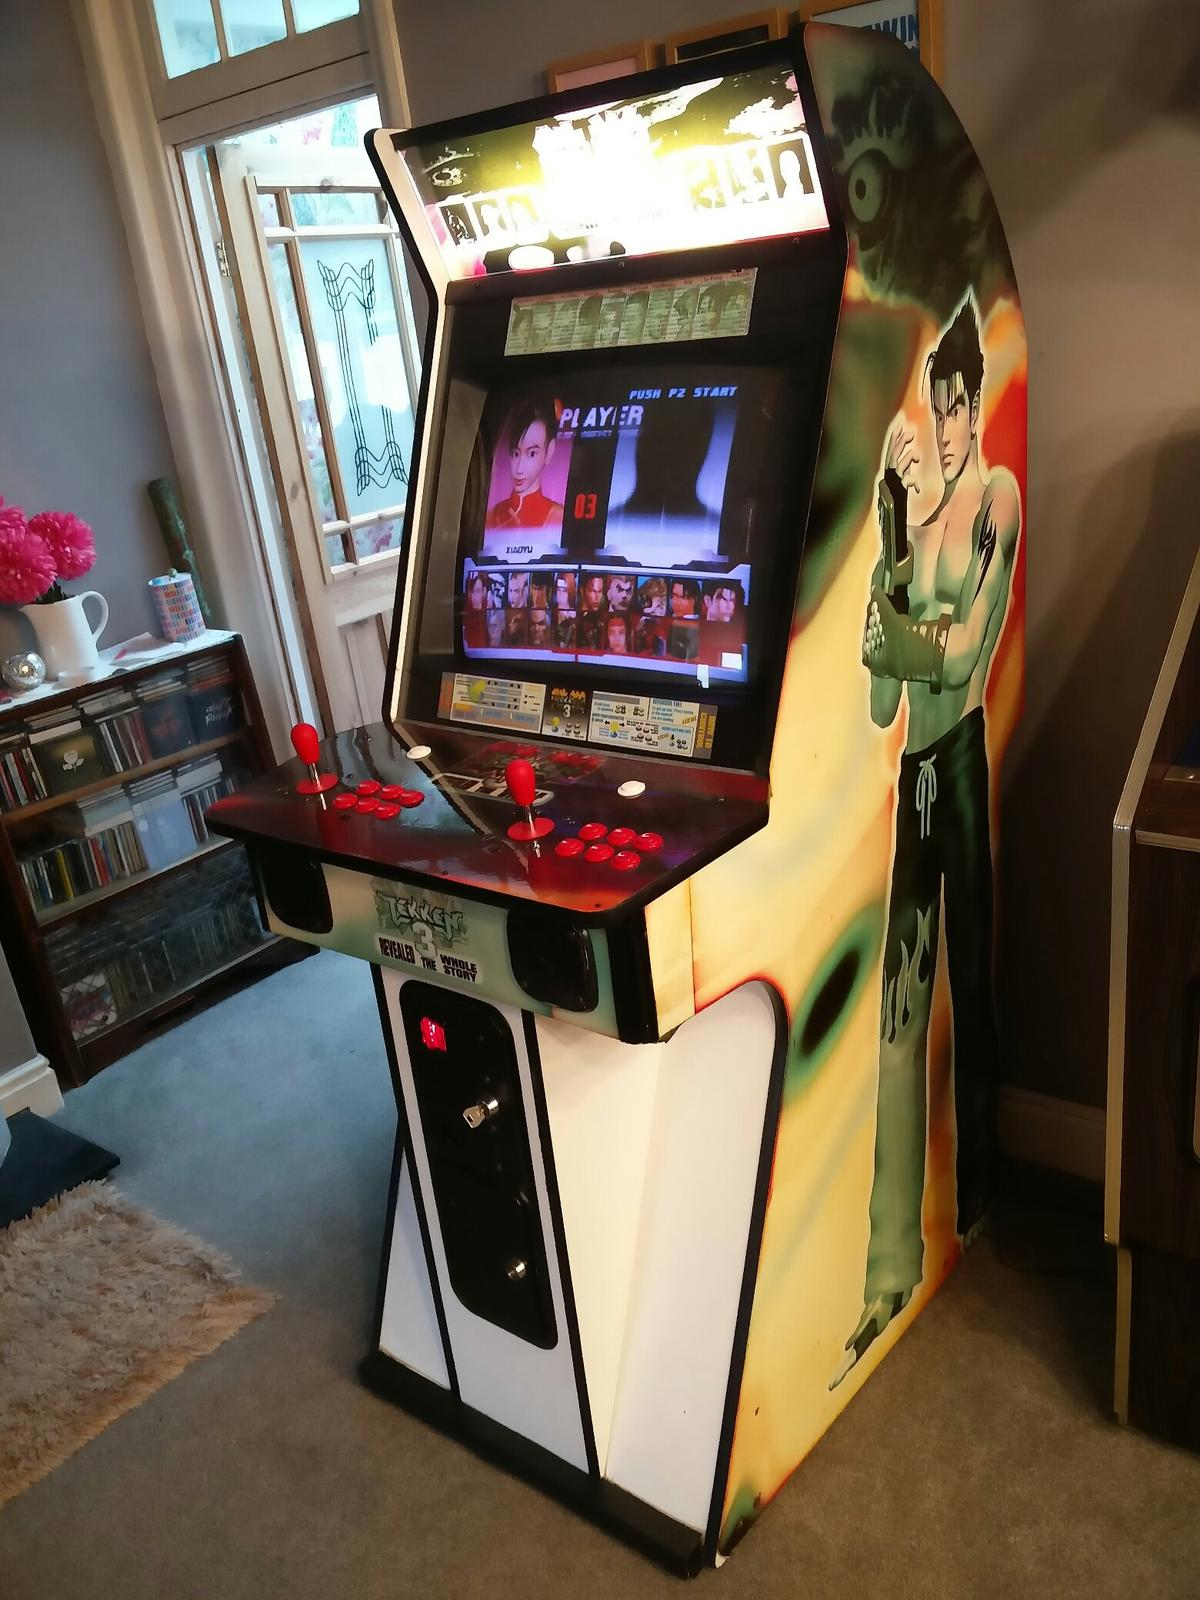 Tekken 3 Arcade Machine - retro gaming in PO4 Portsmouth for